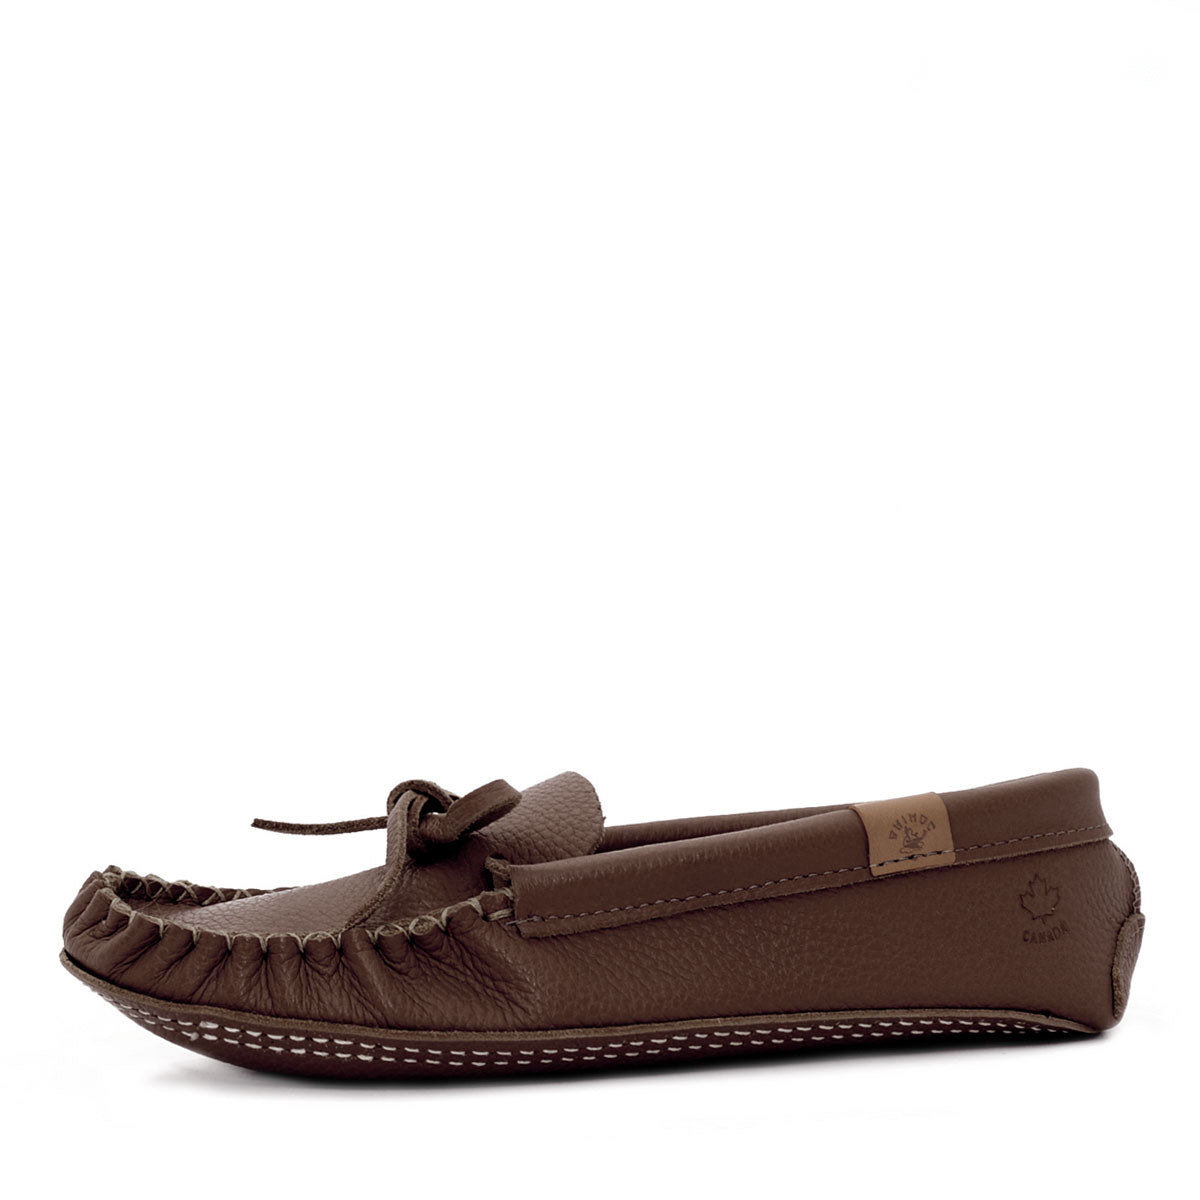 AMIMOC Mocassin Dakota Grizzly Brun